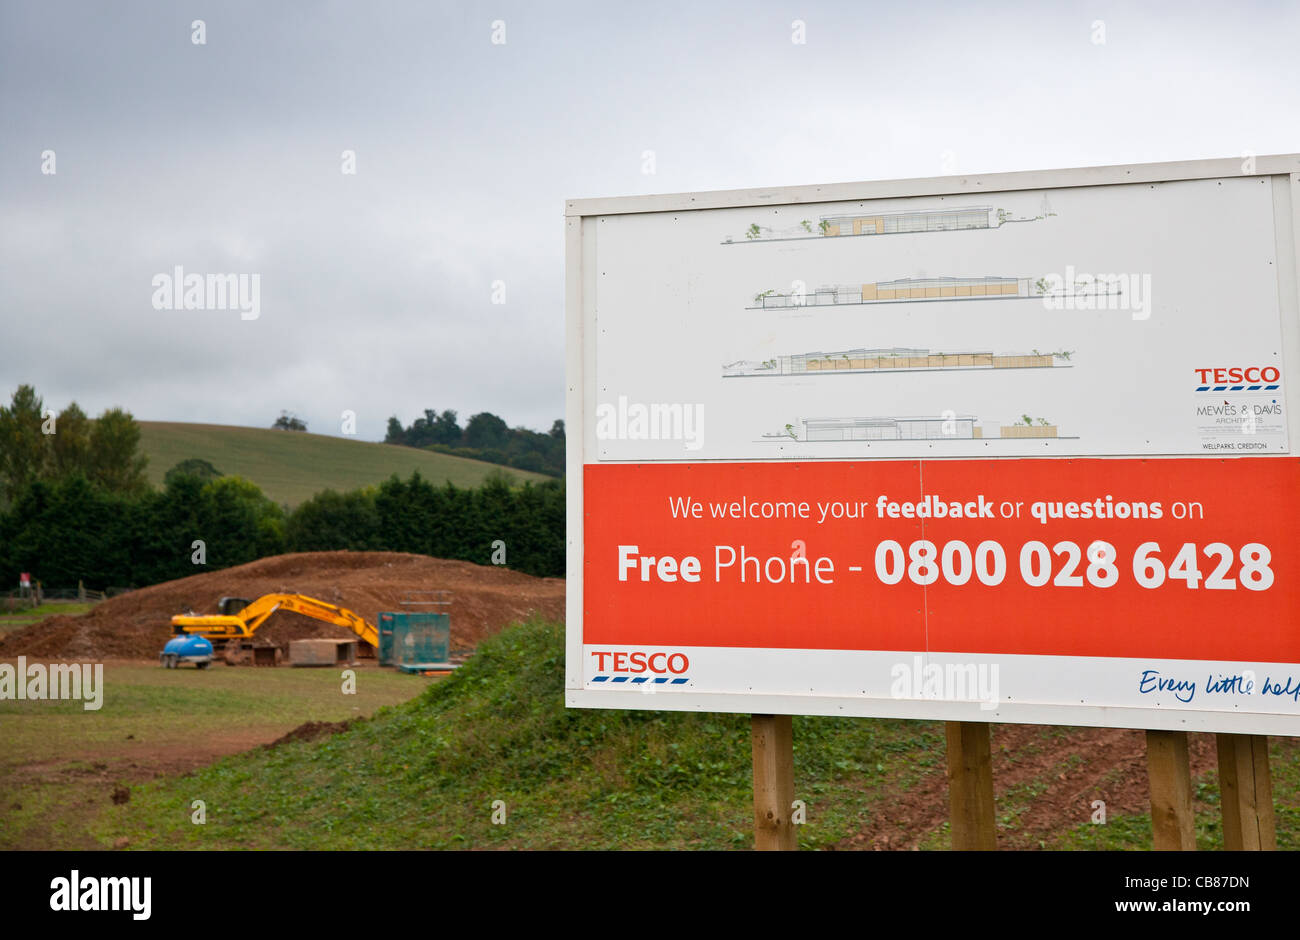 Tesco sign welcoming feedback on a new store development, Devon, England - Stock Image